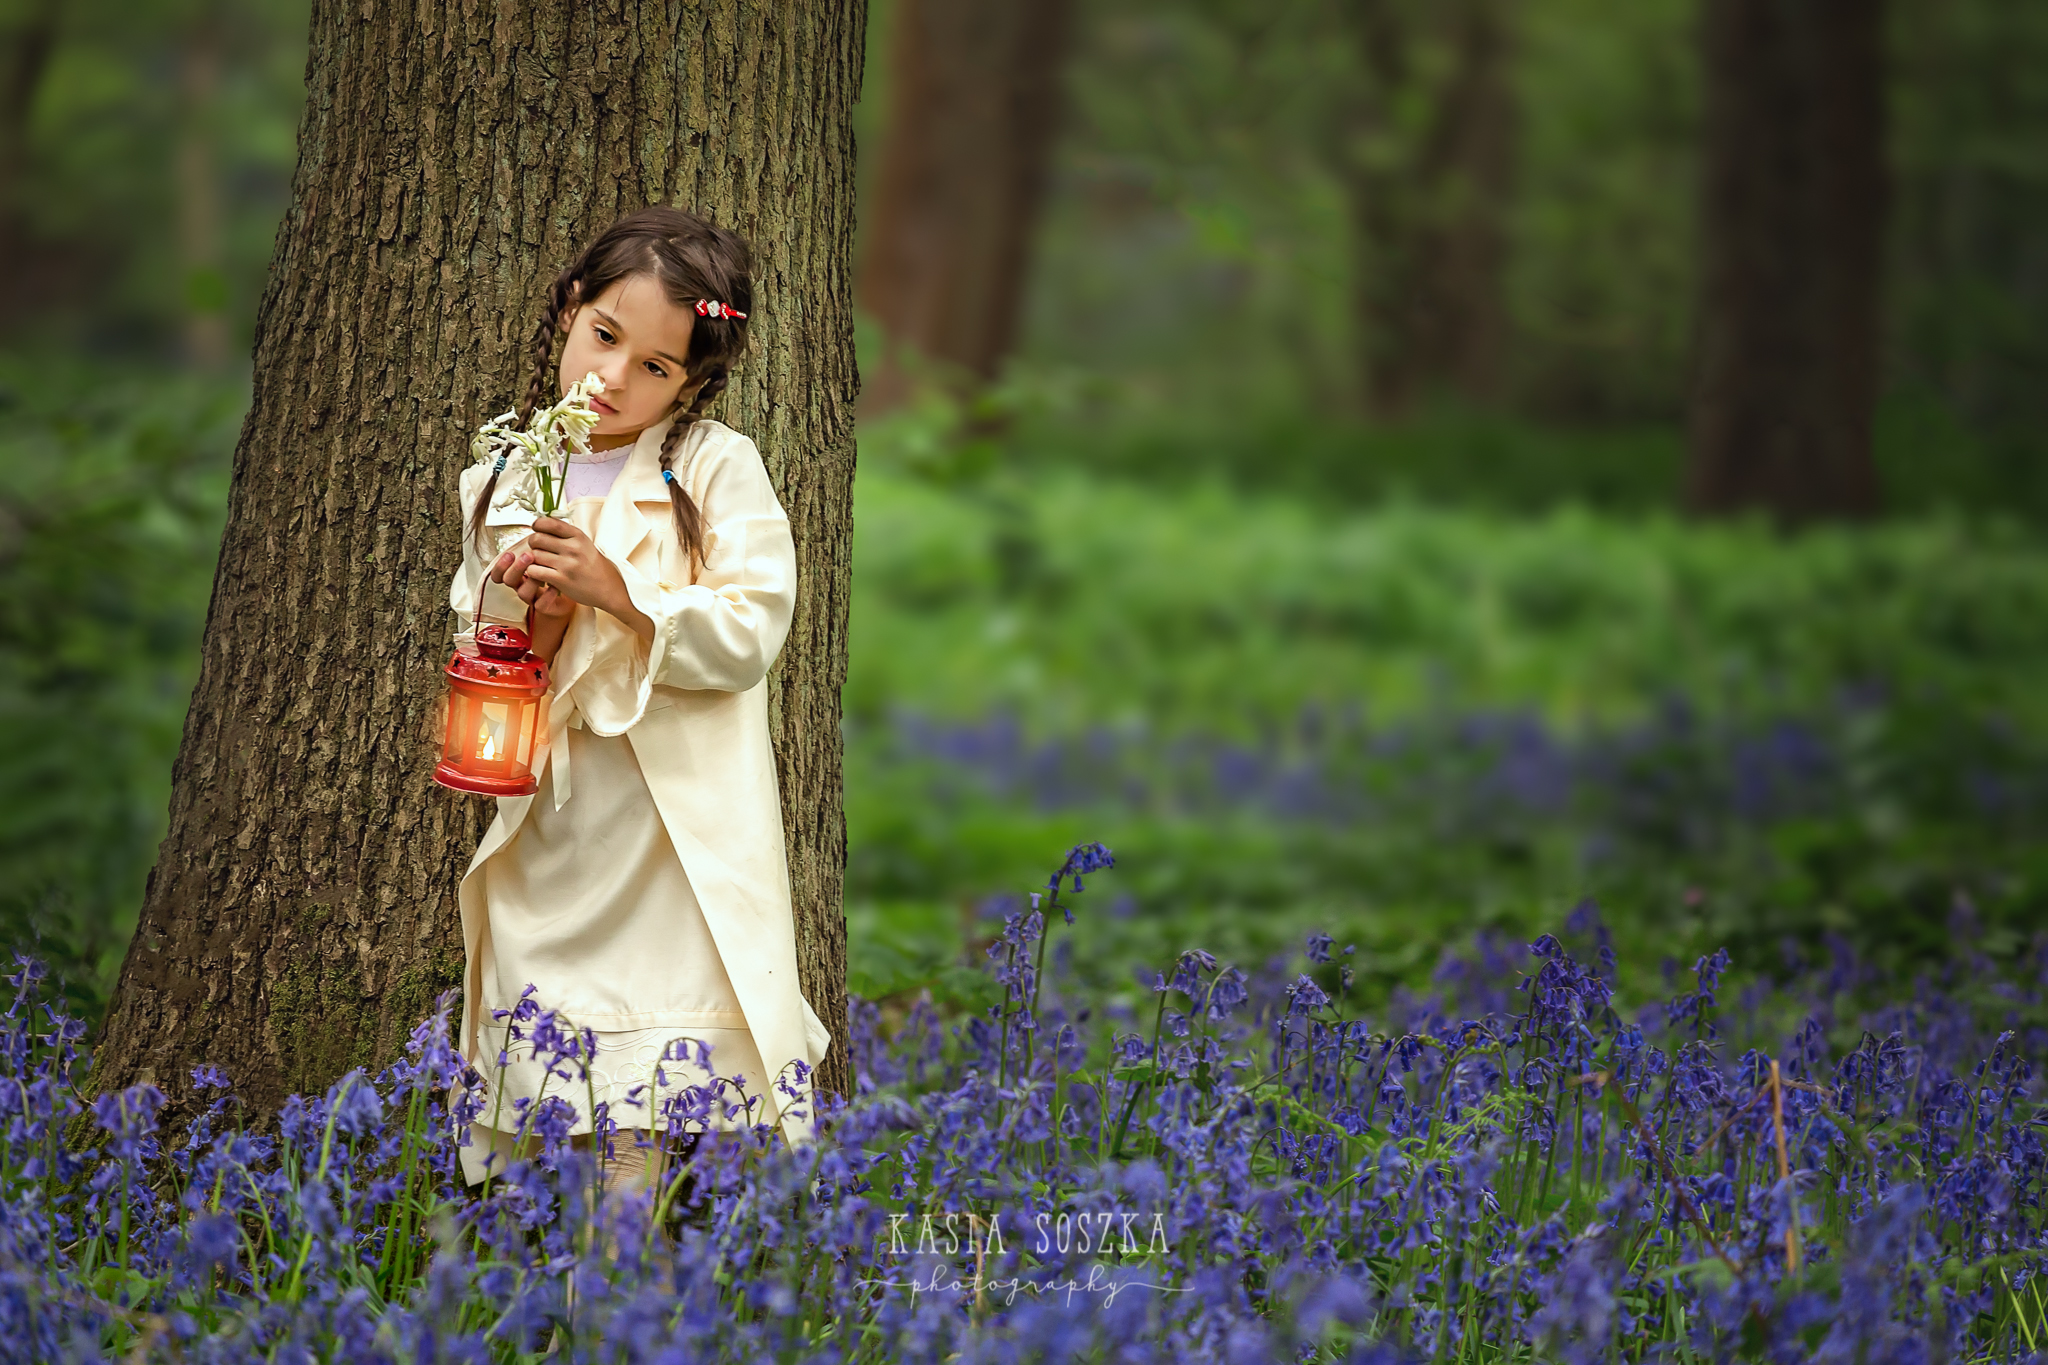 Yorkshire children photography: little girl holding bluebells and a red lantern in a bluebell forest